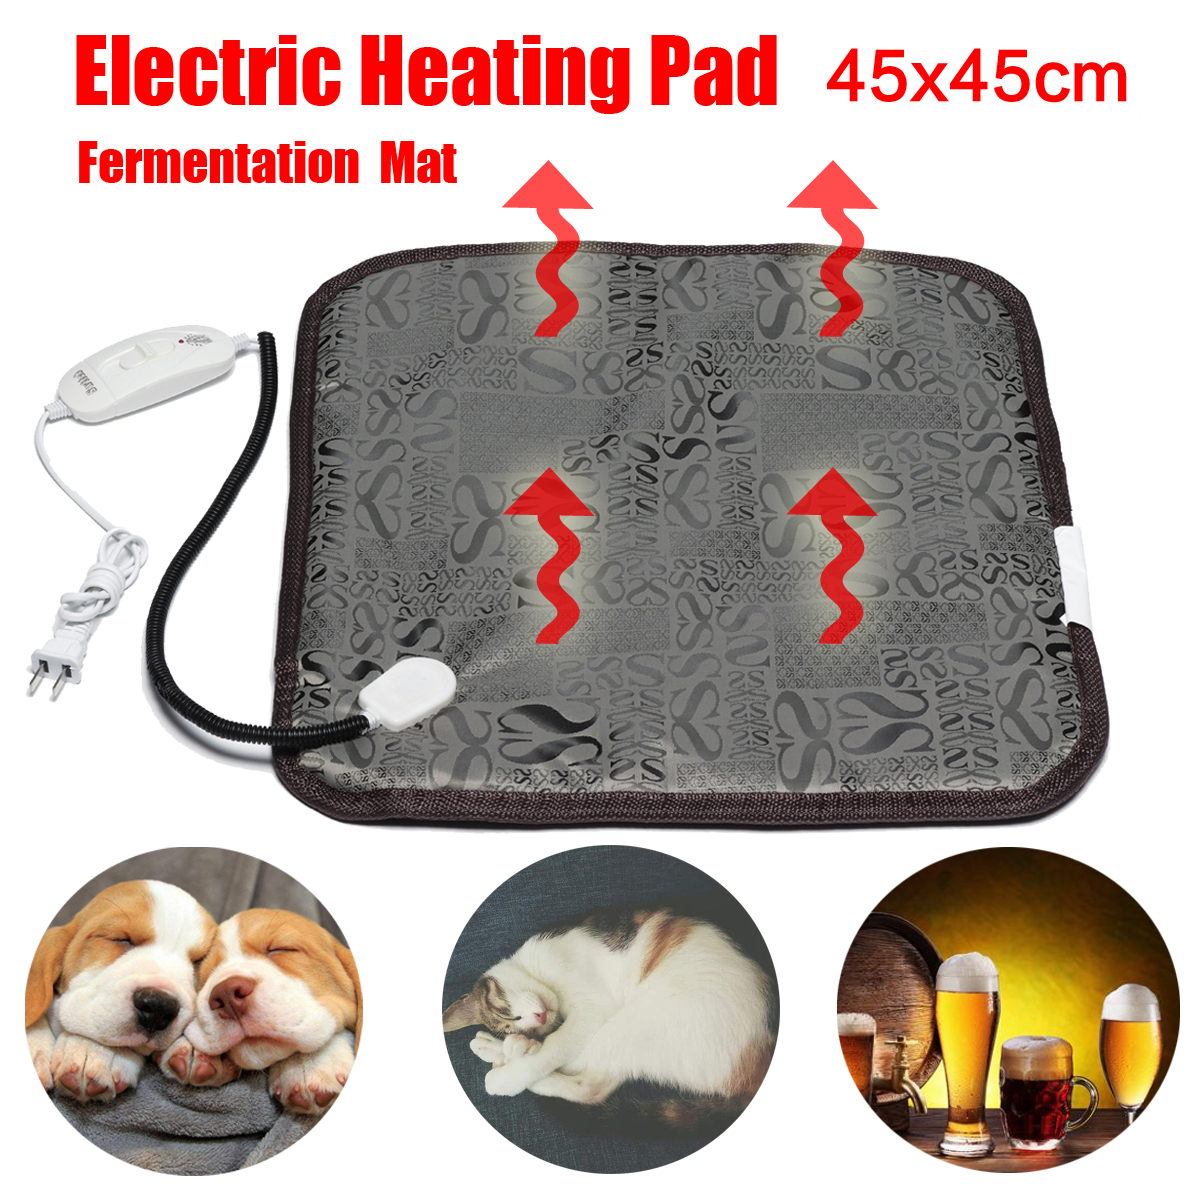 цена Pet Dog Cat Electric Heating Pad Winter Warmer Carpet for Bed Animals Electric Blanket Home Beer Brew Fermentation Heater Mat